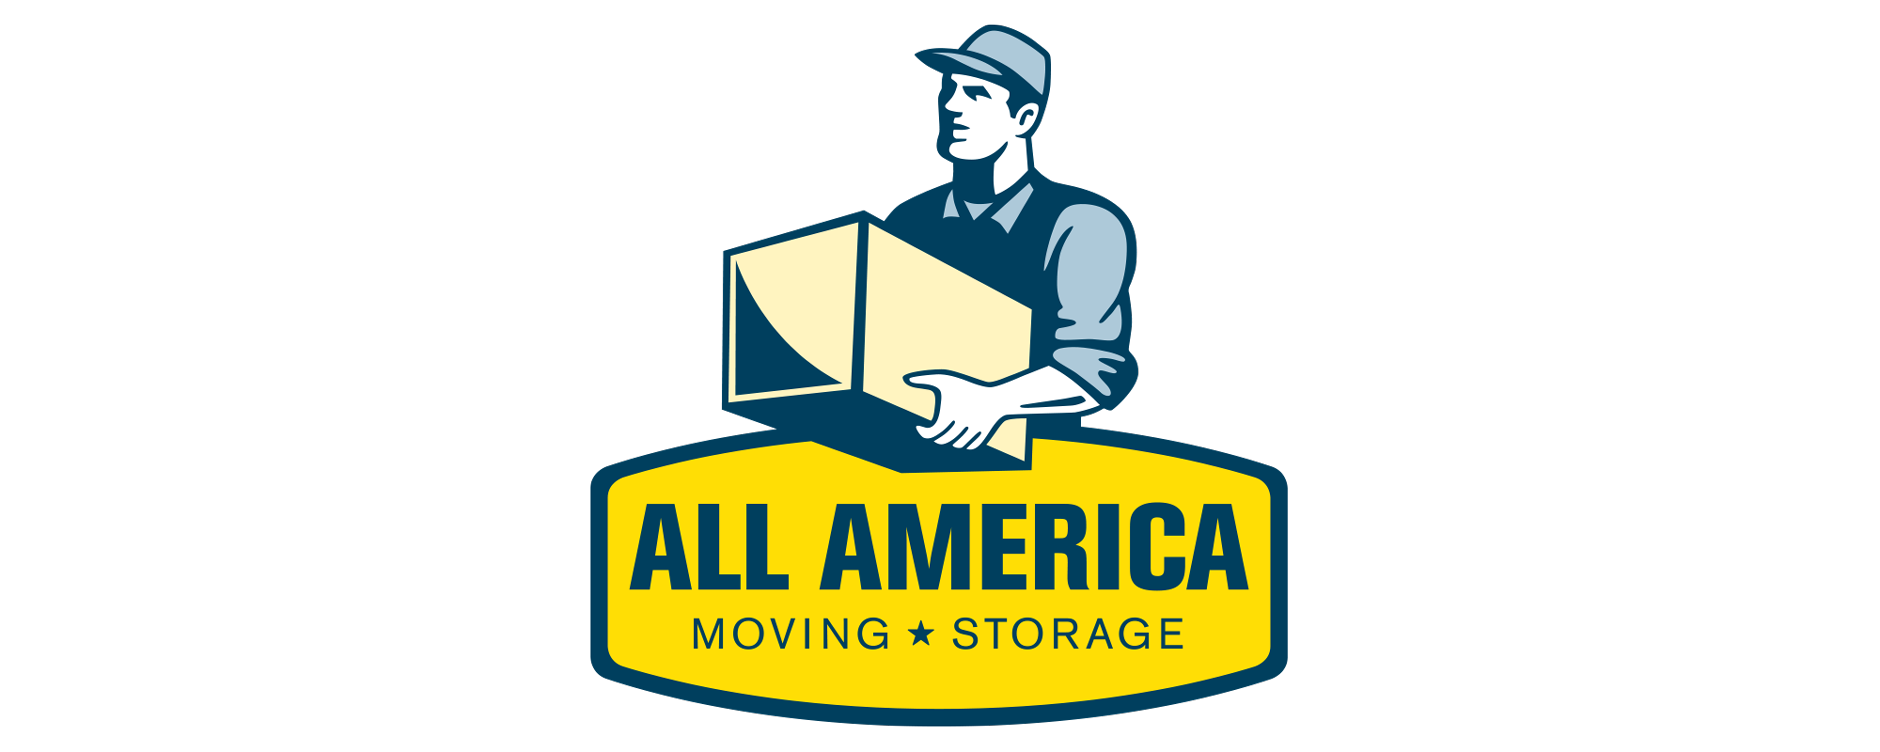 All America Moving and Storage | Logo Design |Branding